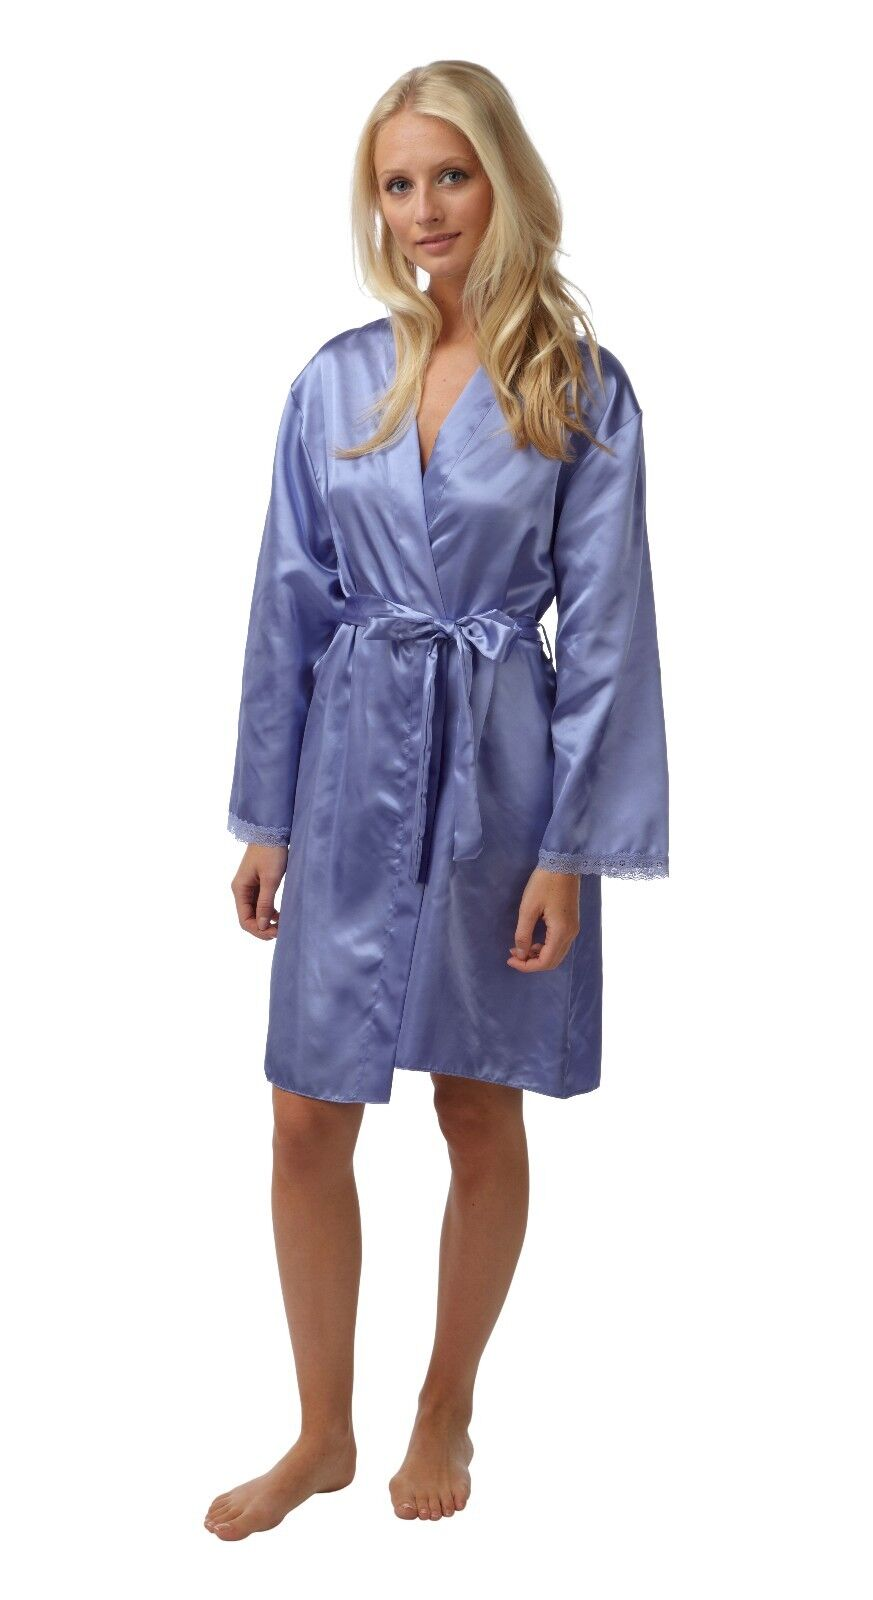 Ladies Lilac Satin Silky Dressing Gown Robe Wrap Lace Short Length 8 ...